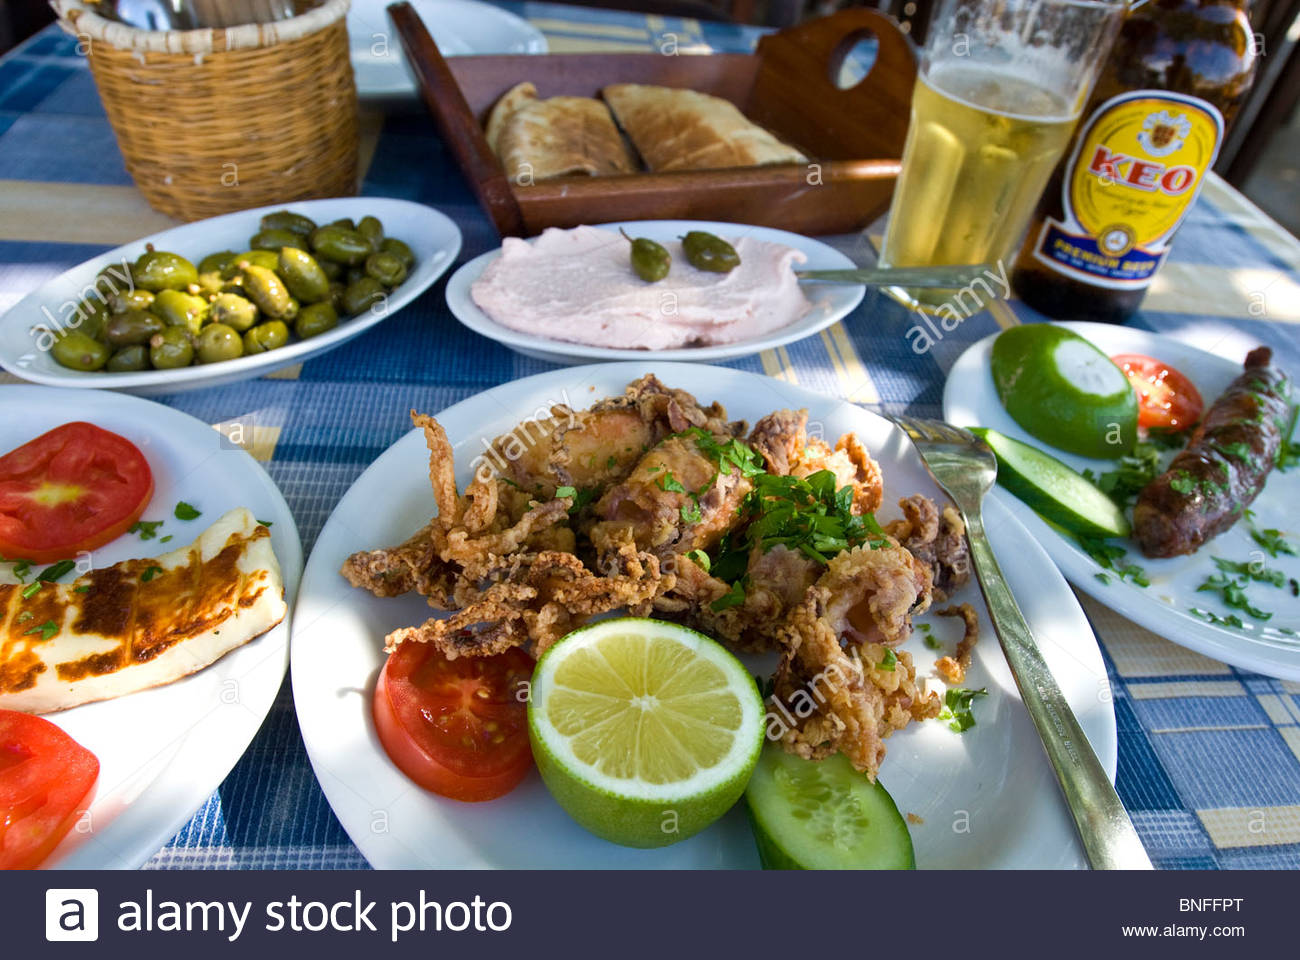 Meze Cypriot style meal, Cyprus - Stock Image